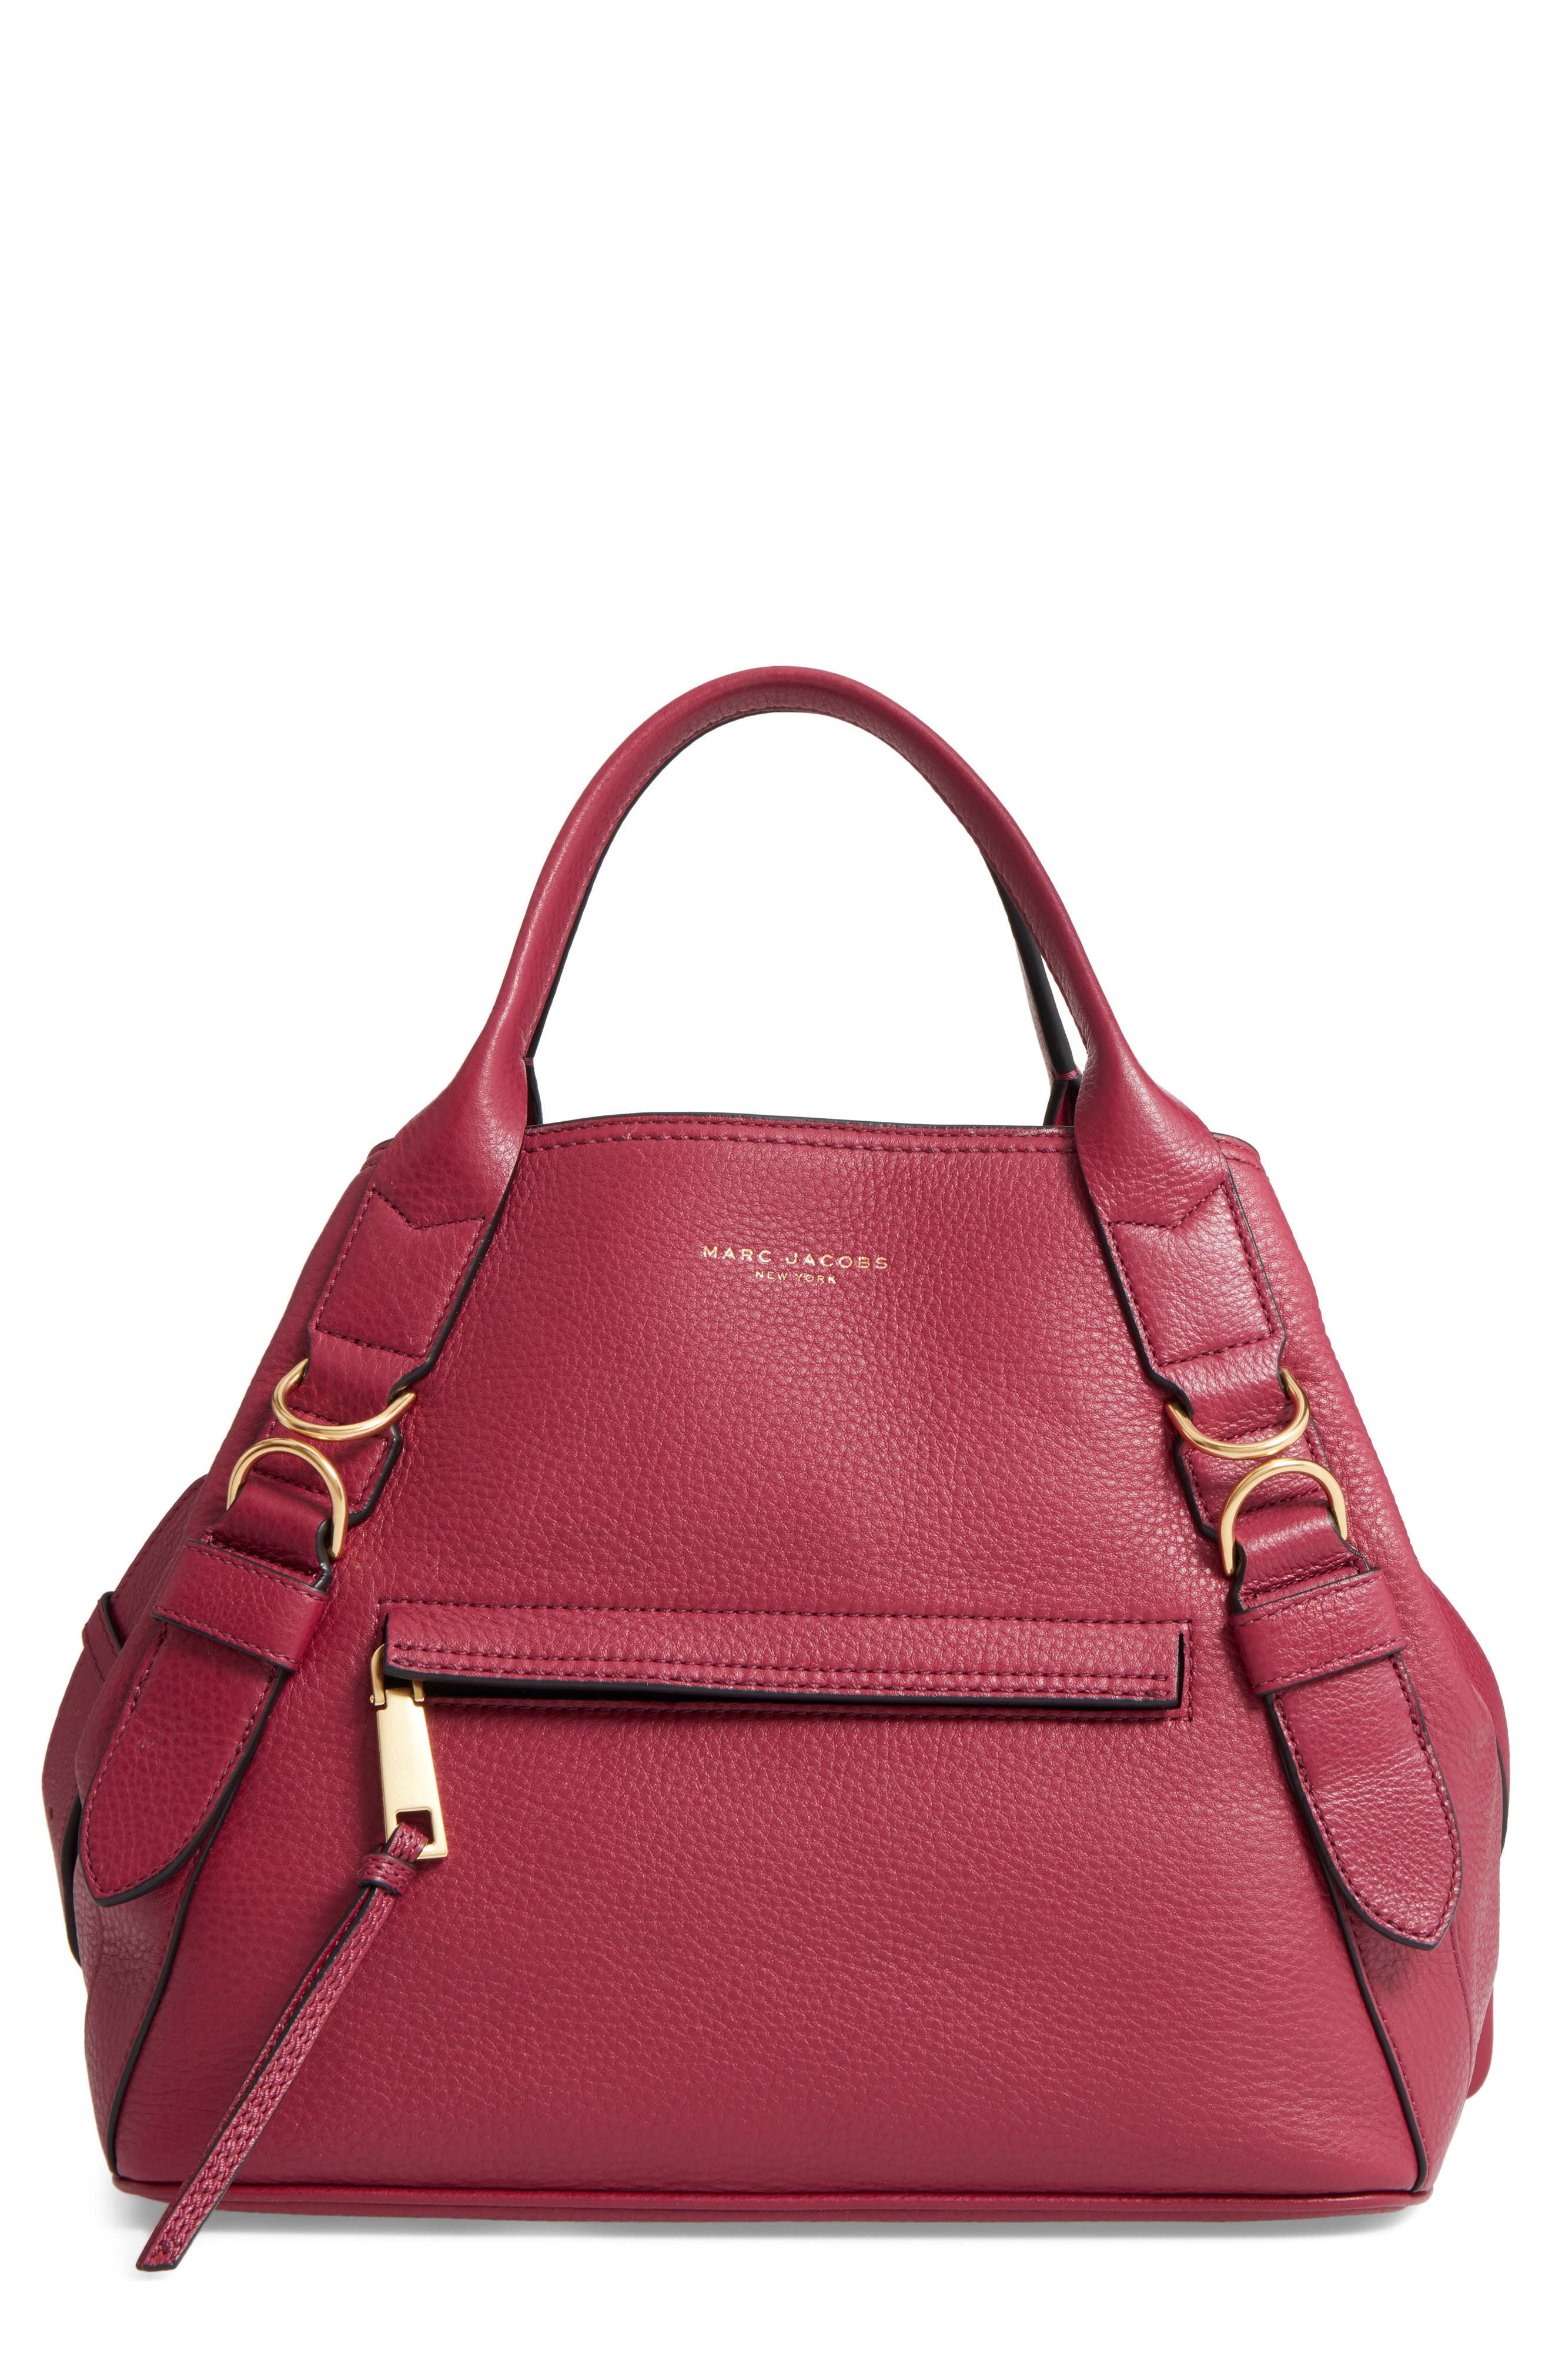 MARC JACOBS The Anchor Leather Shoulder Bag